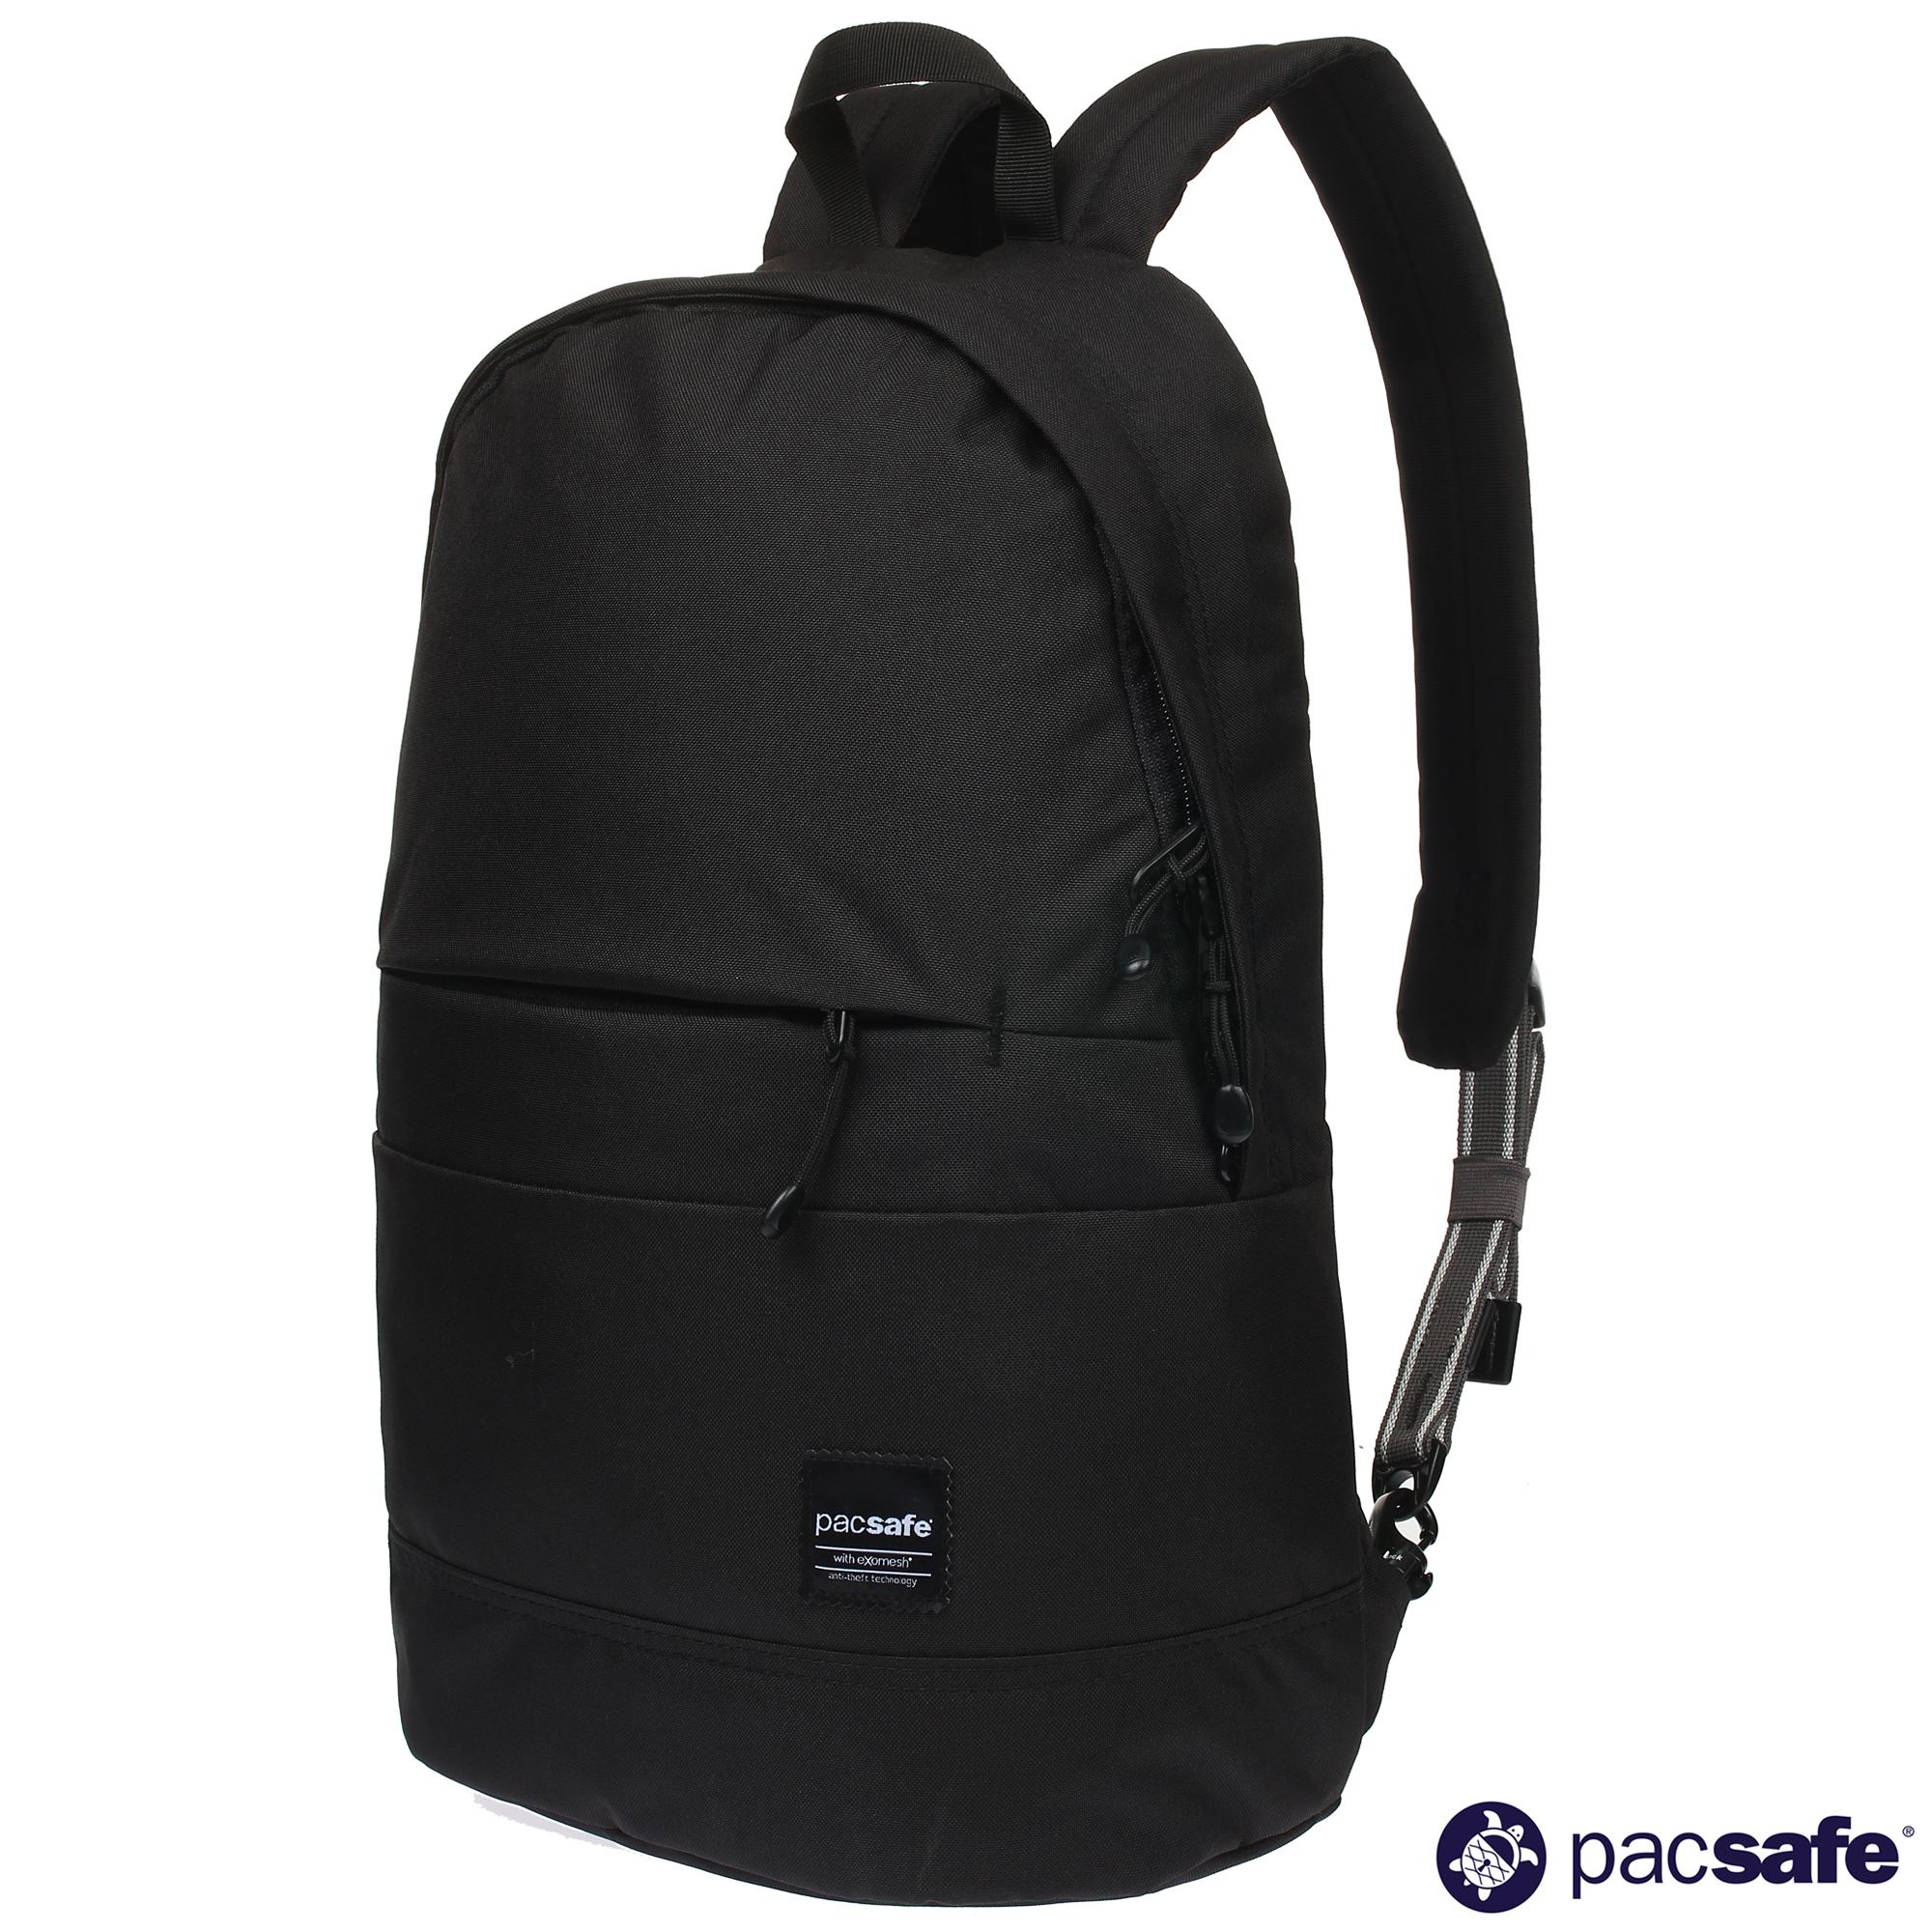 284c917e36d2 Pacsafe Slingsafe LX300 Anti-theft Backpack  45230 (Black)